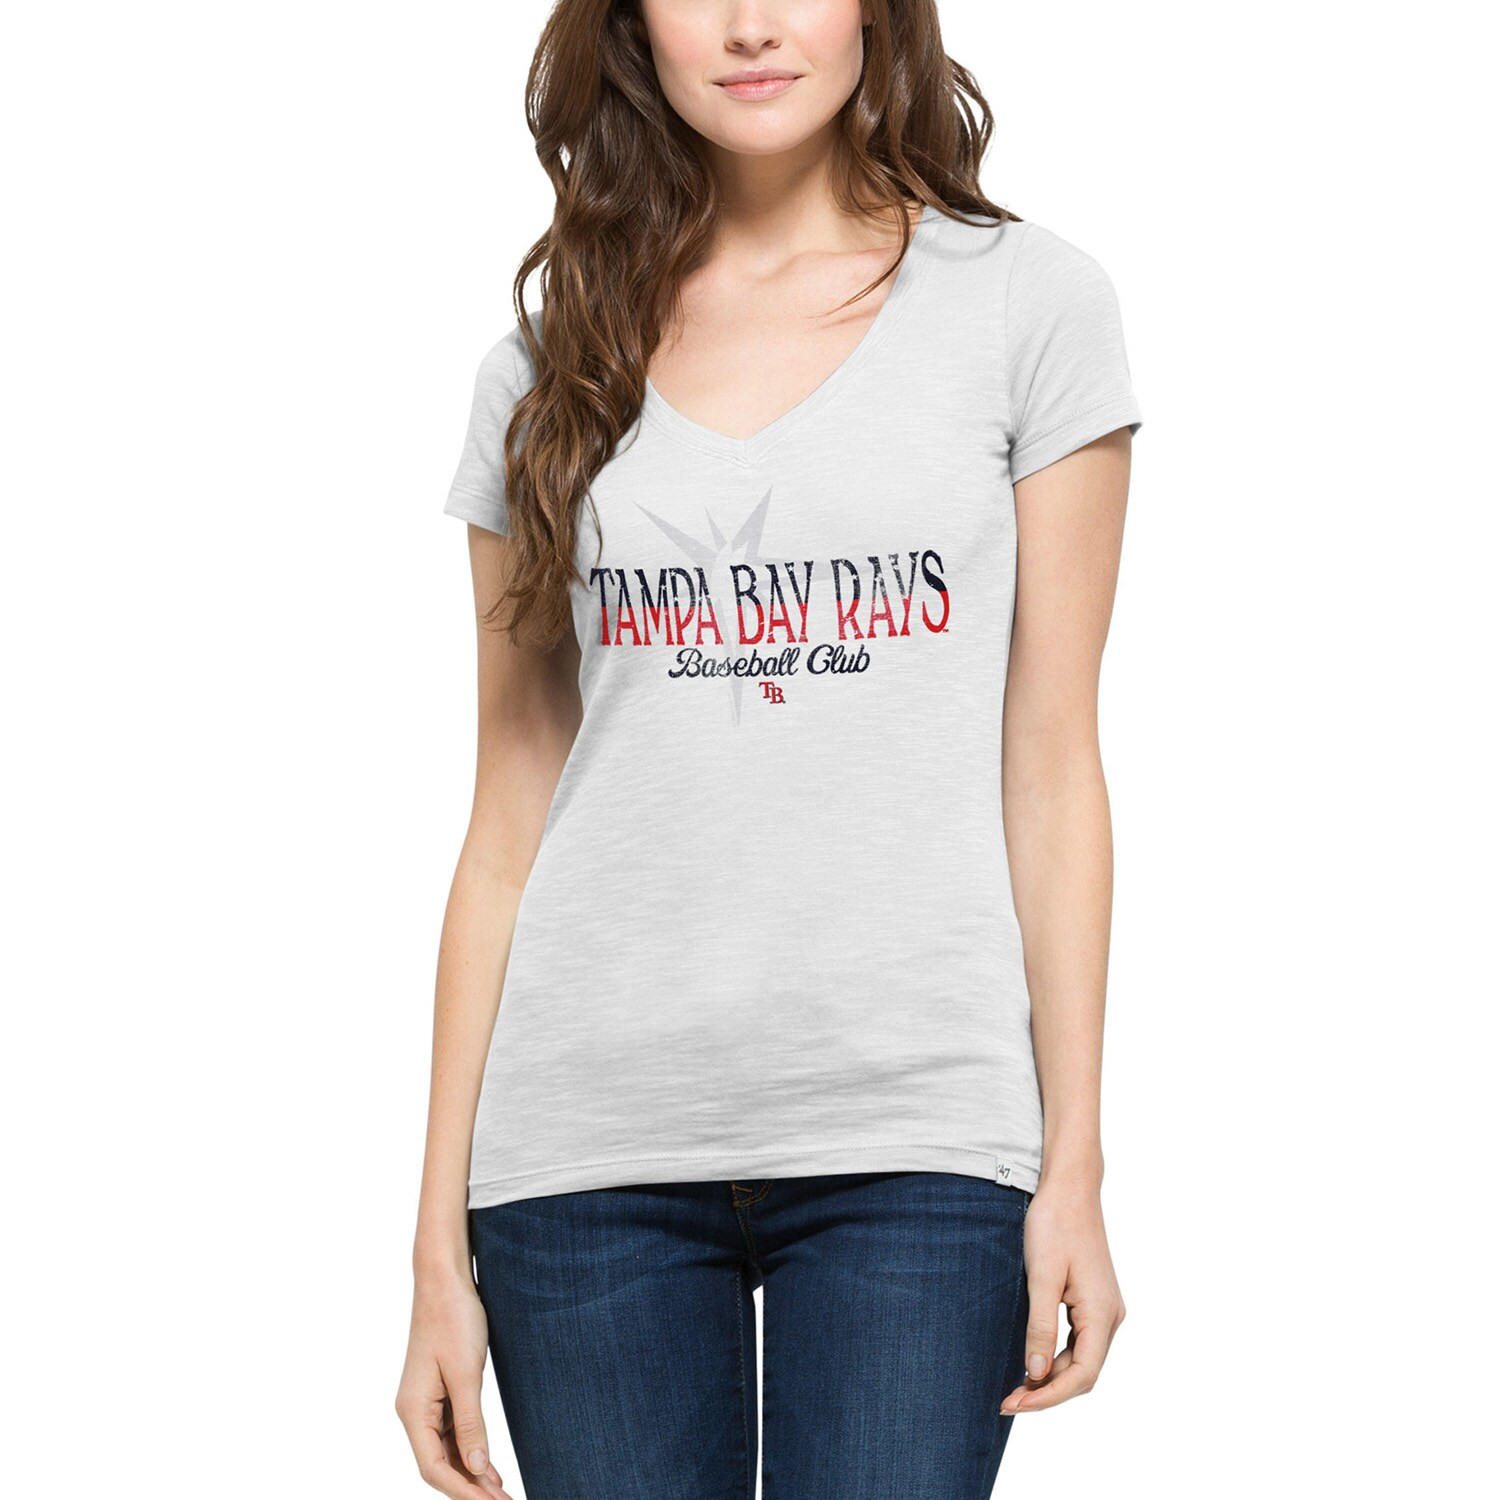 Tampa Bay Rays '47 Women's Stars & Stripes Scrum V-Neck T-Shirt - White